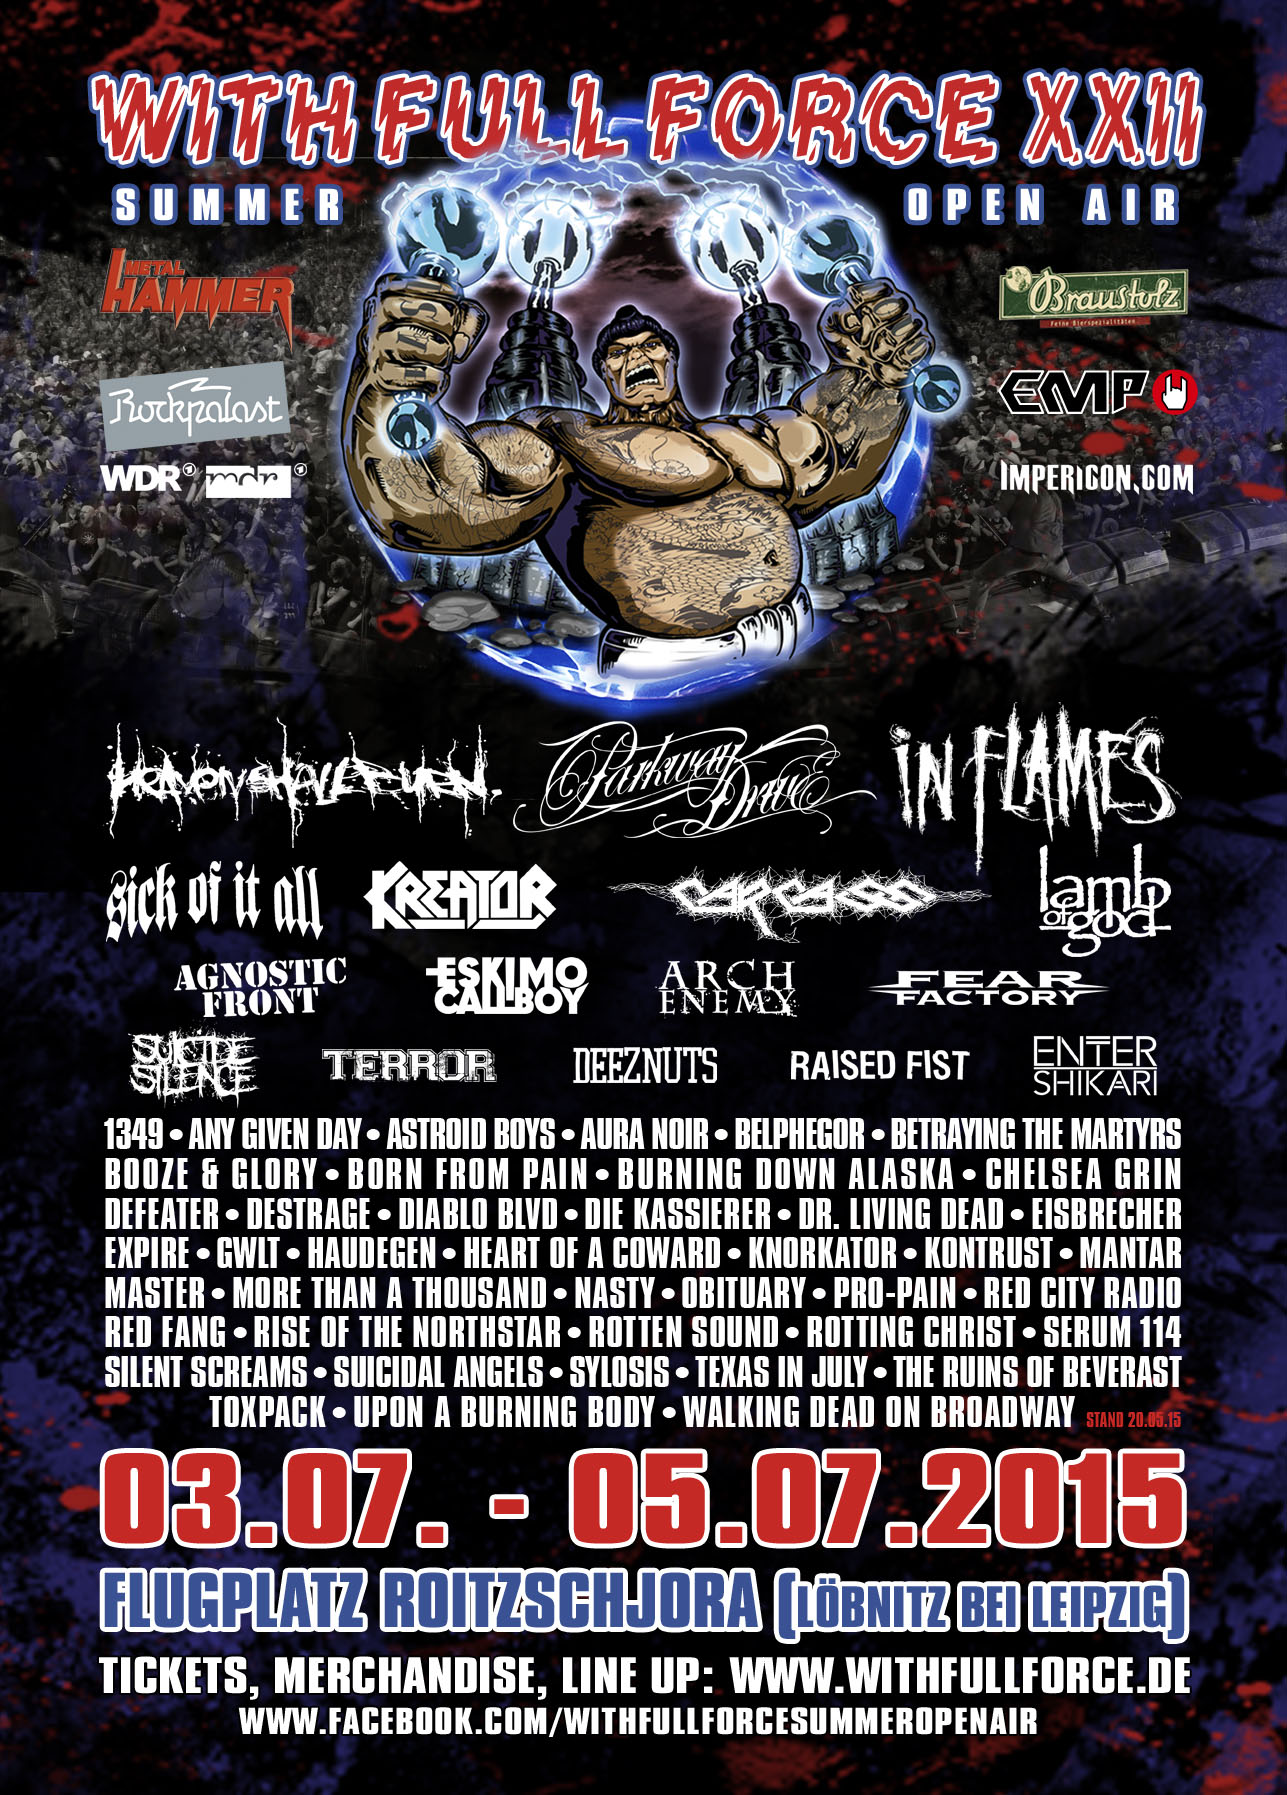 With Full Force Festival 2015